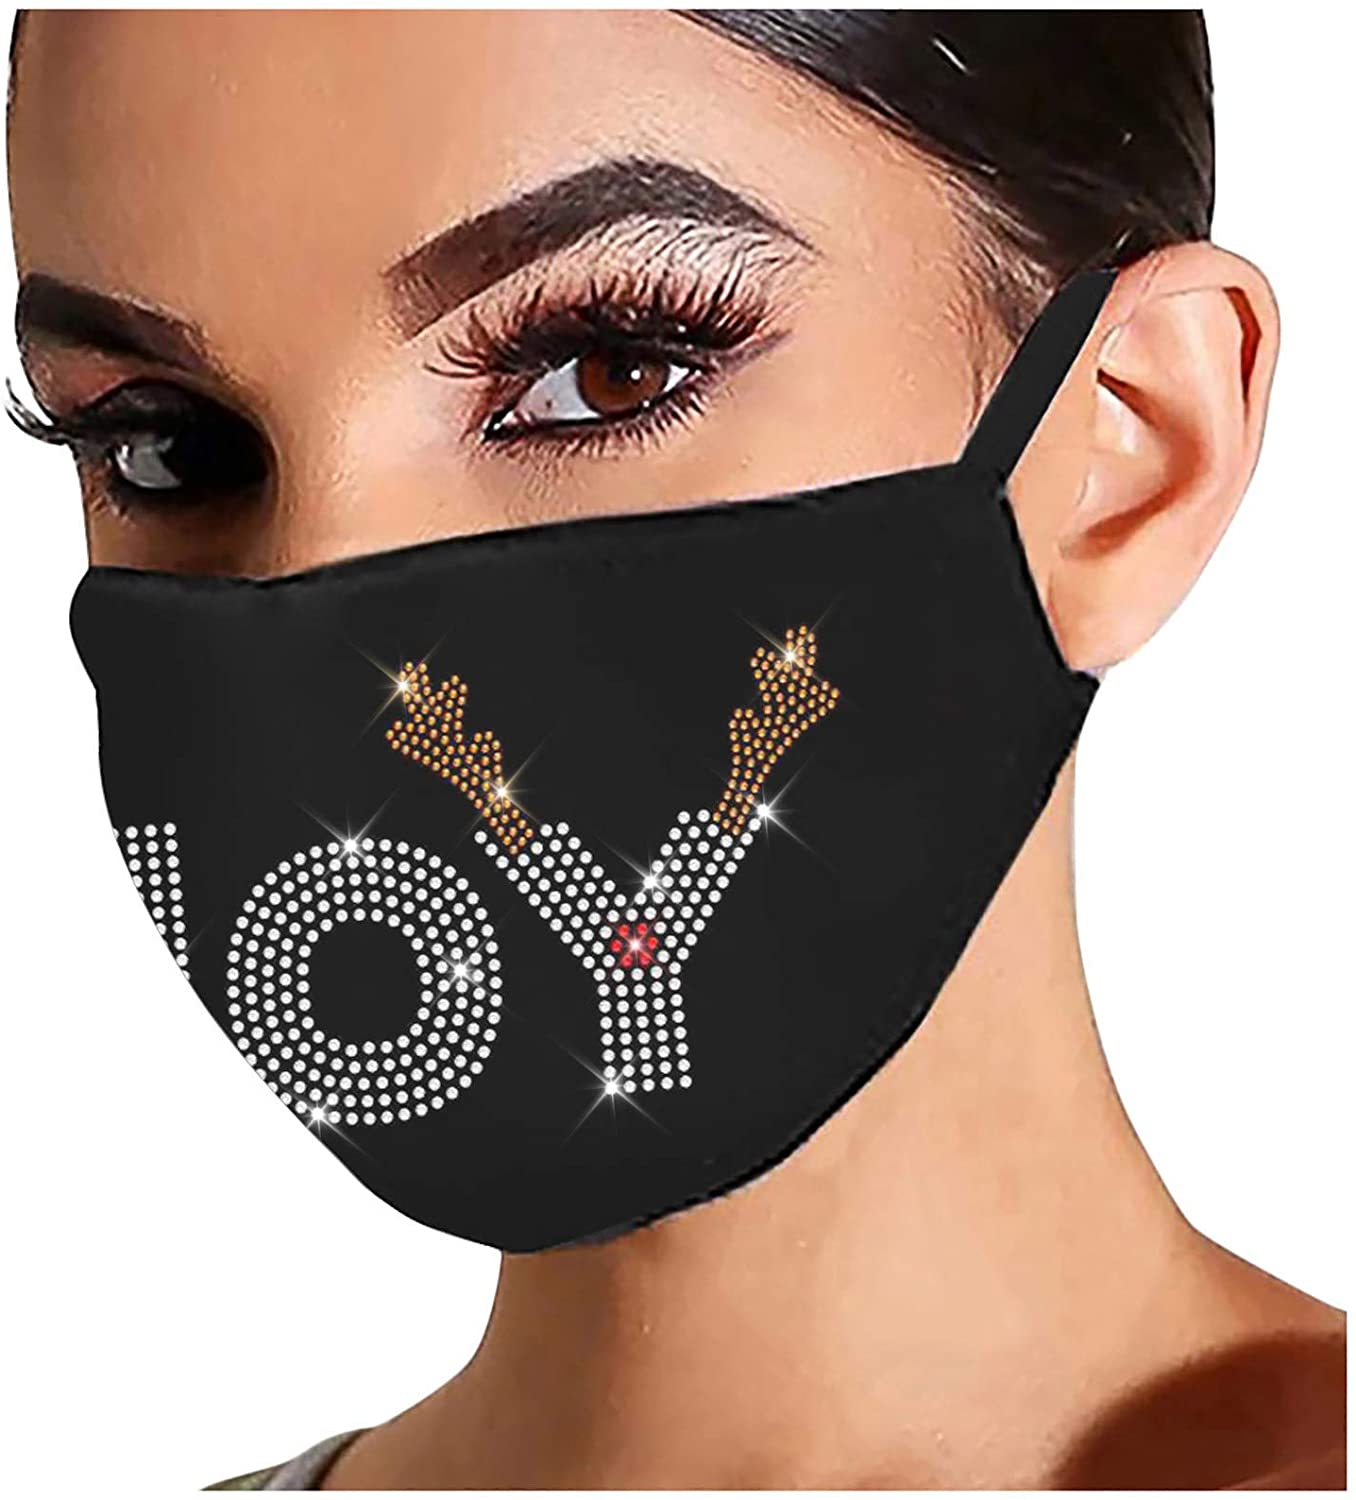 1PC Novel Reusable Outdoor Drill Windproof Hair Hanging Ear Black Mask,Christmas Face Mask for Adult Reusable Washable Flash Diamond Rhinestone Breathable Fashion Cotton Face Balaclavas